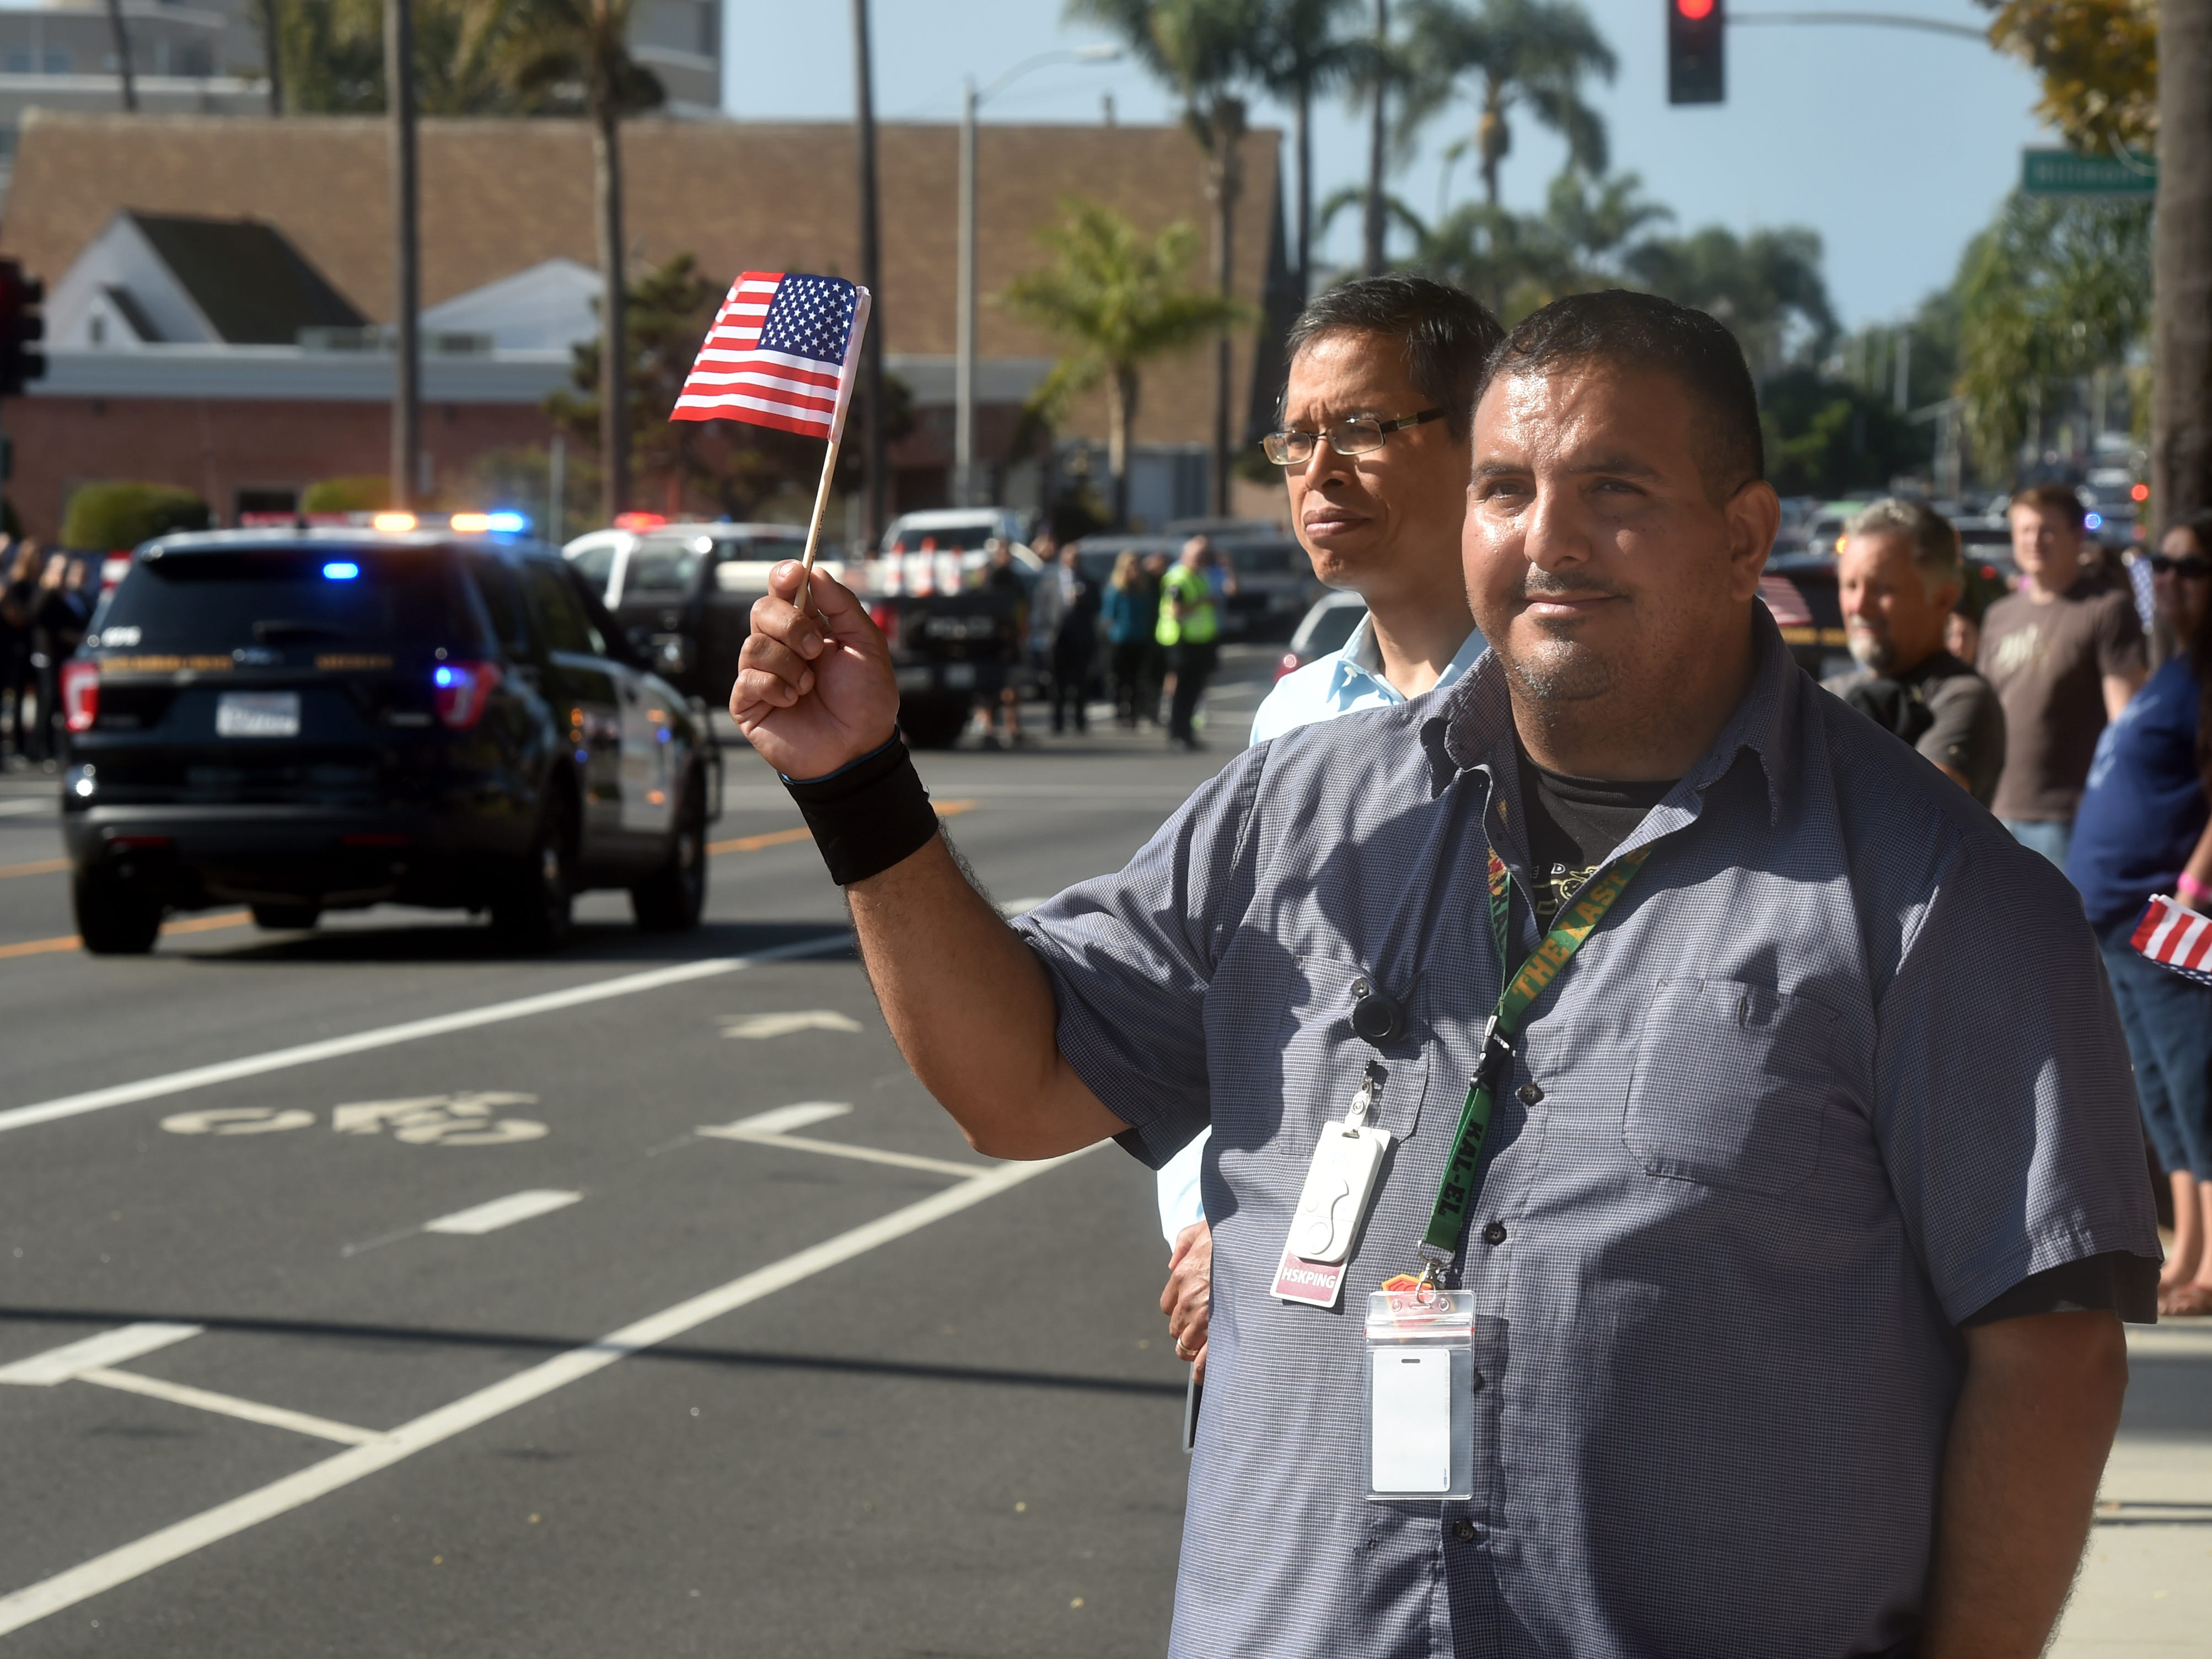 Josue Lara, a janitor at Ventura County Medical Center, watches along Loma Vista Road as a procession passes by carrying the body of Ventura County Sheriff Sgt. Ron Helus, who was one of 12 victims of the shooting in Thousand Oaks late Wednesday.